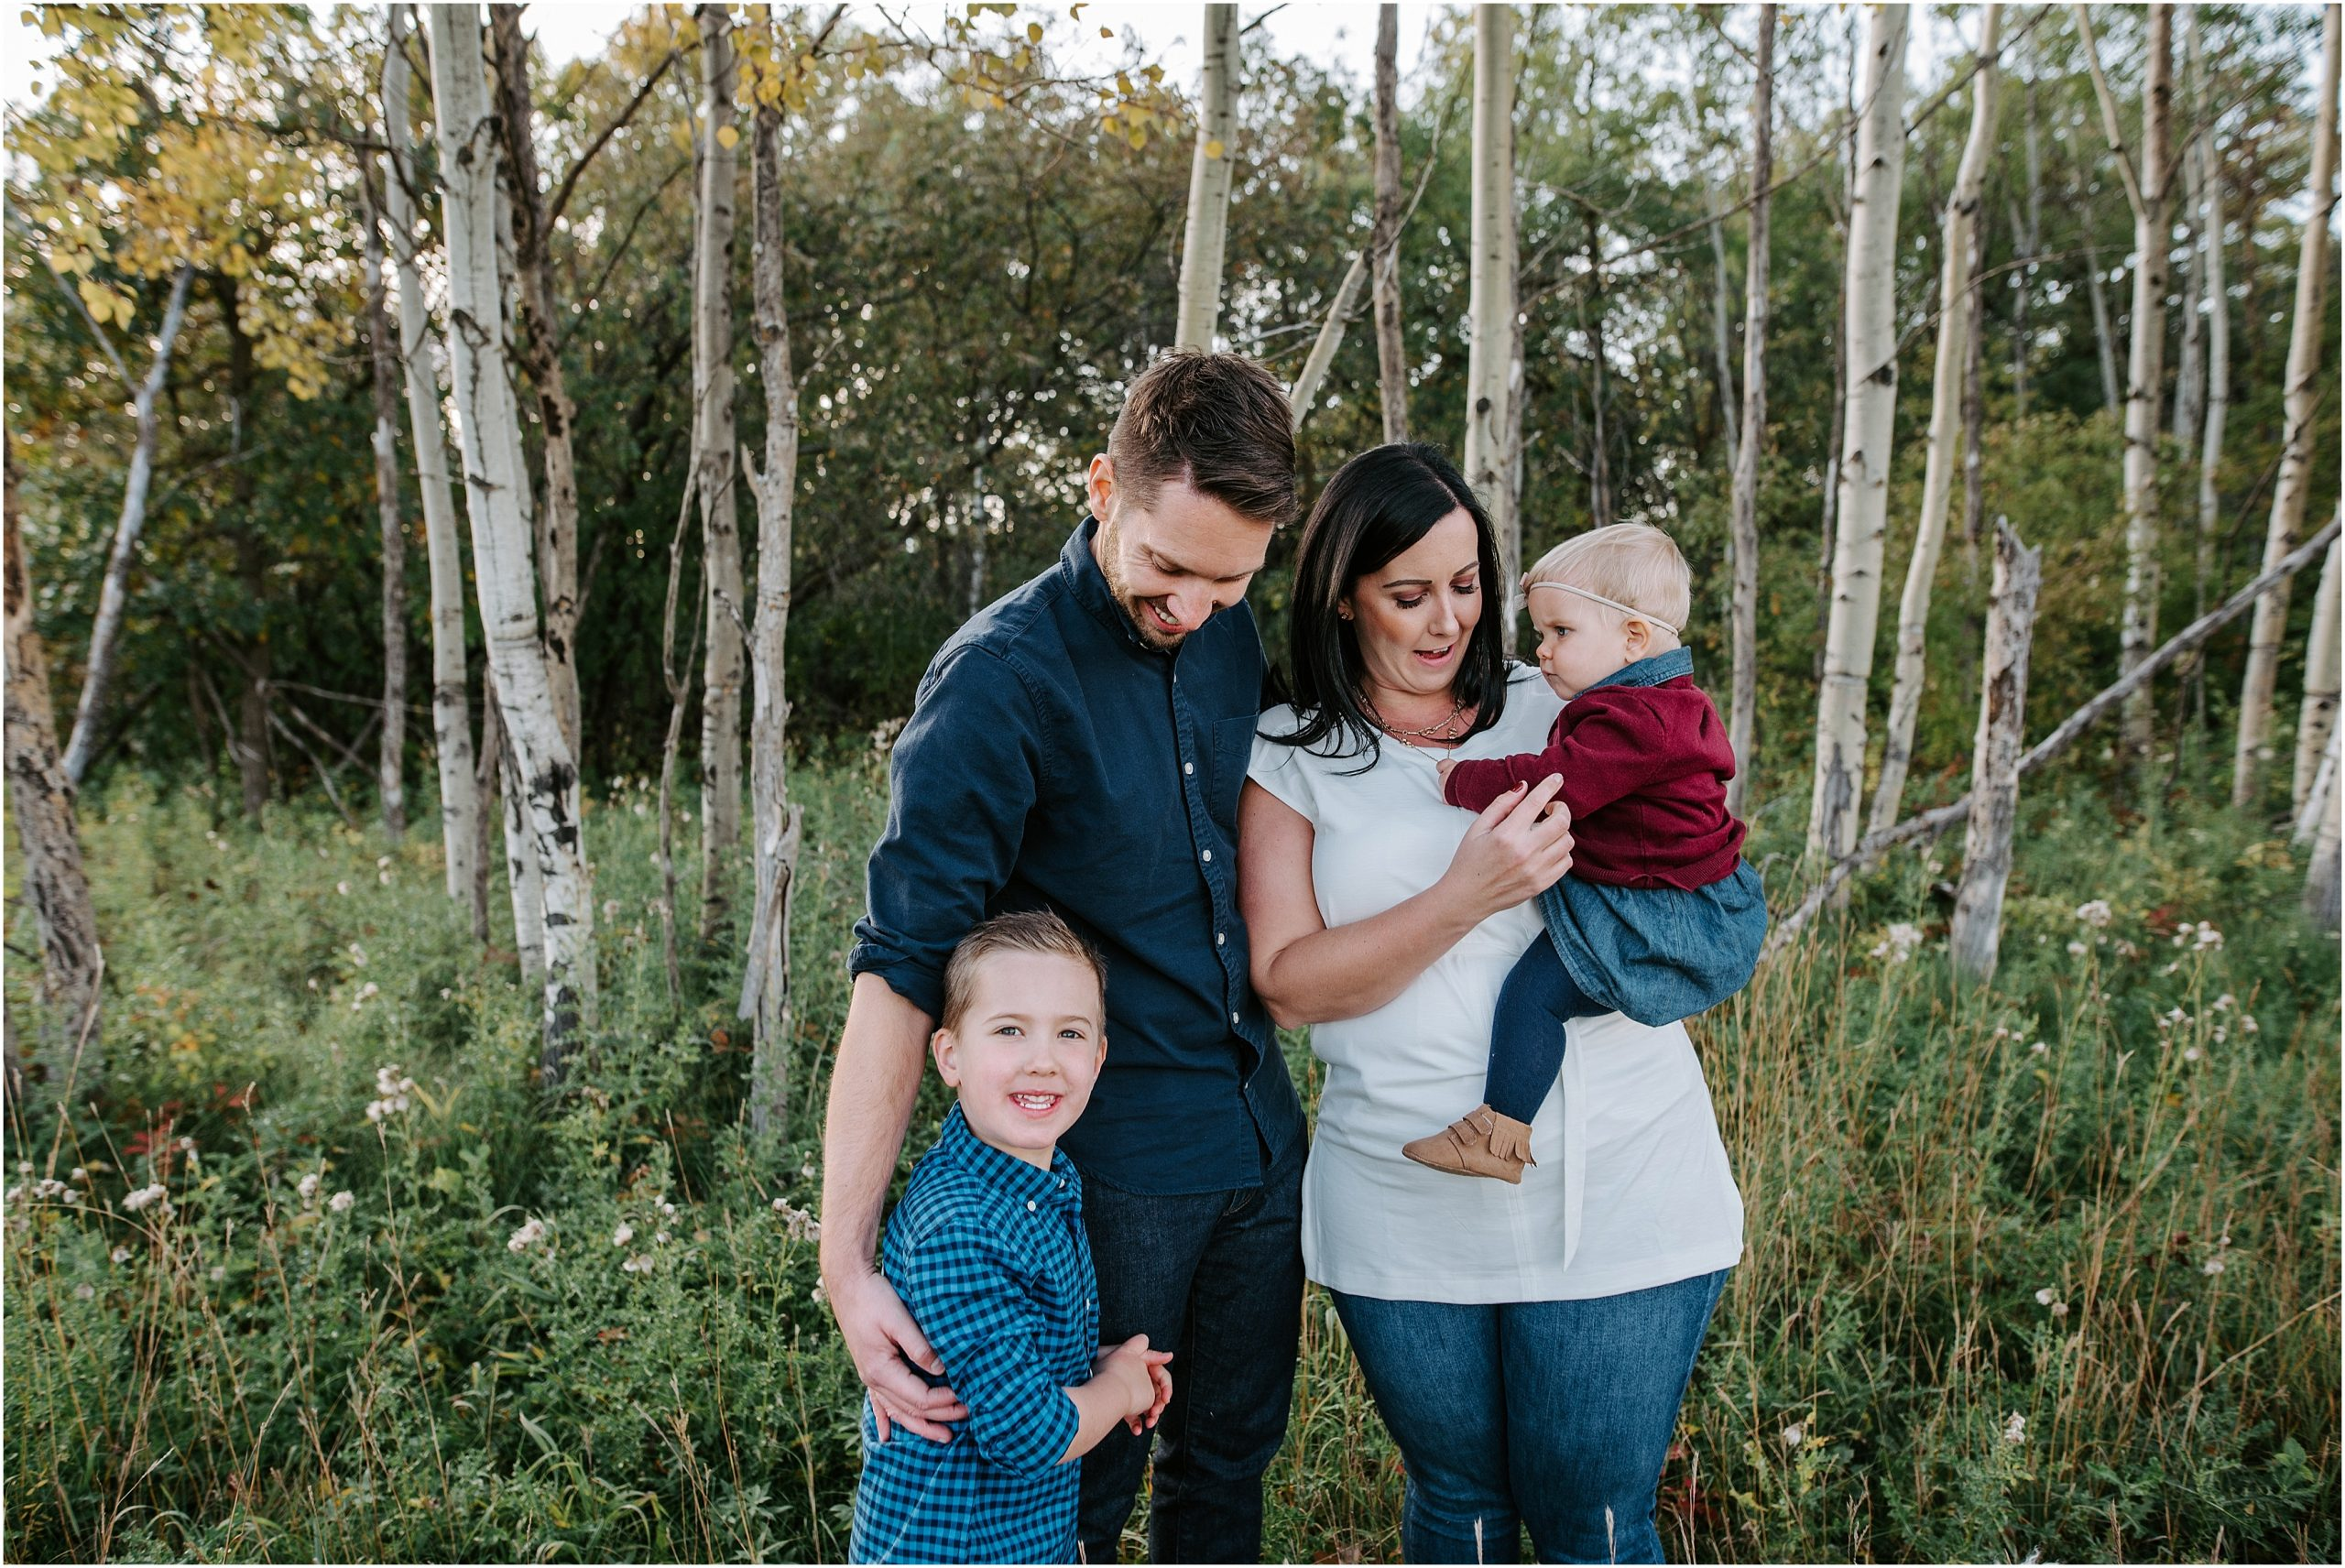 Winnipeg Family Photographer at the Living Prairie Museum of the Friesen family